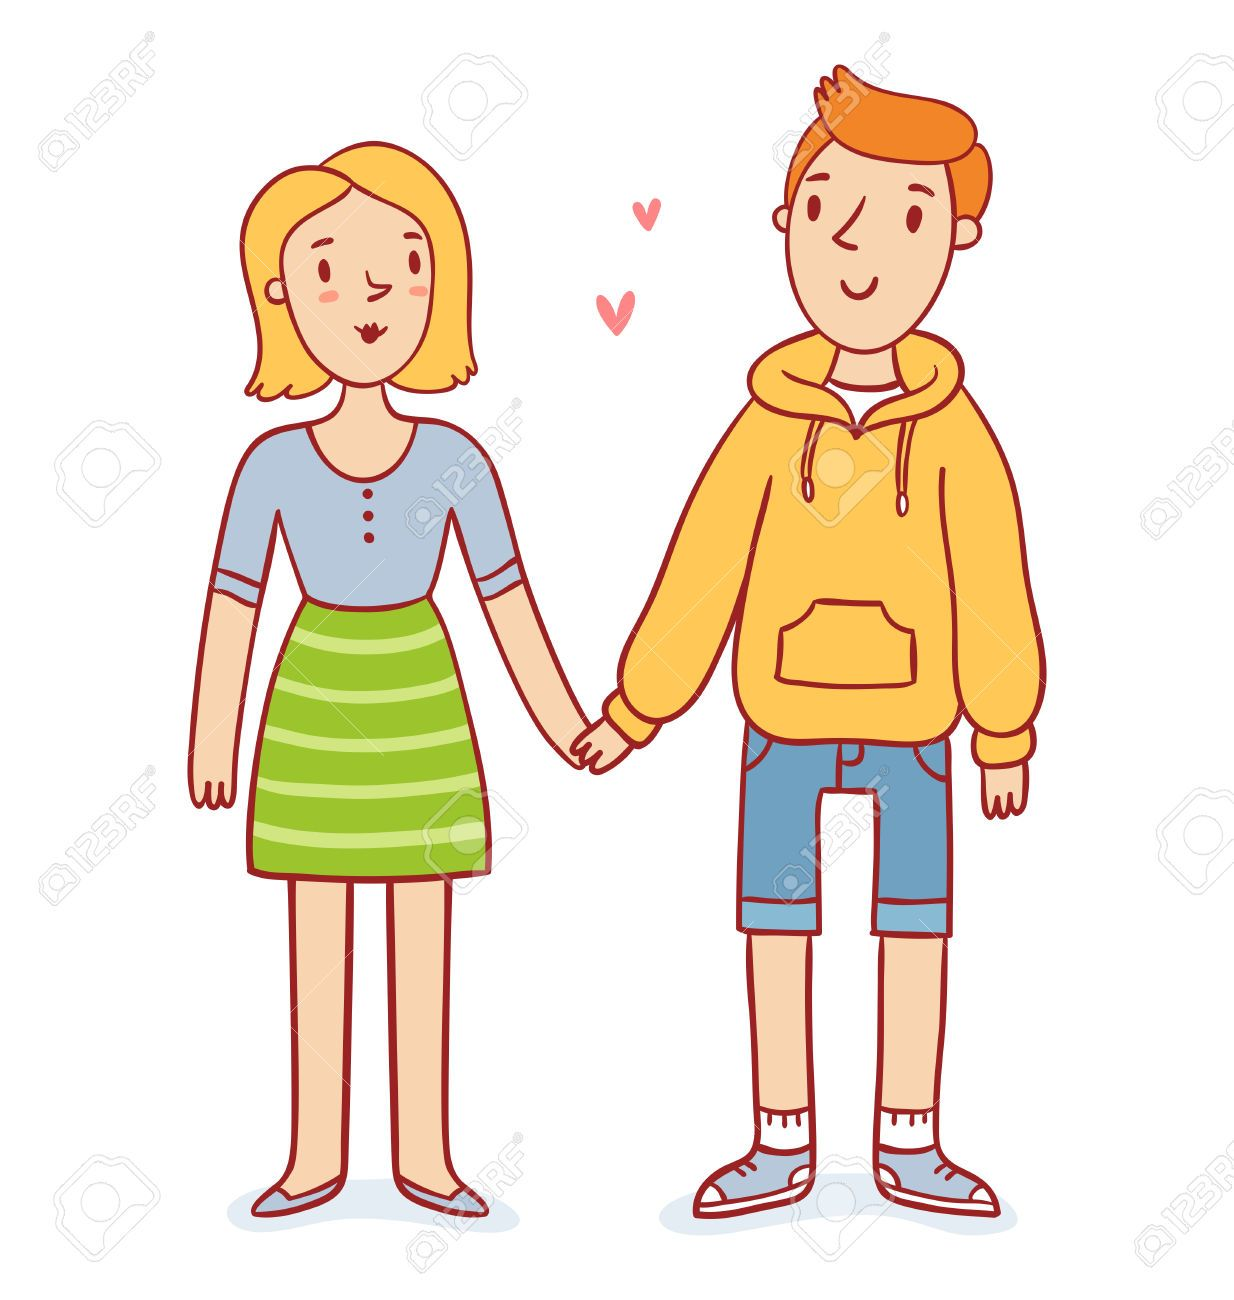 Couple holding hands cartoon google search